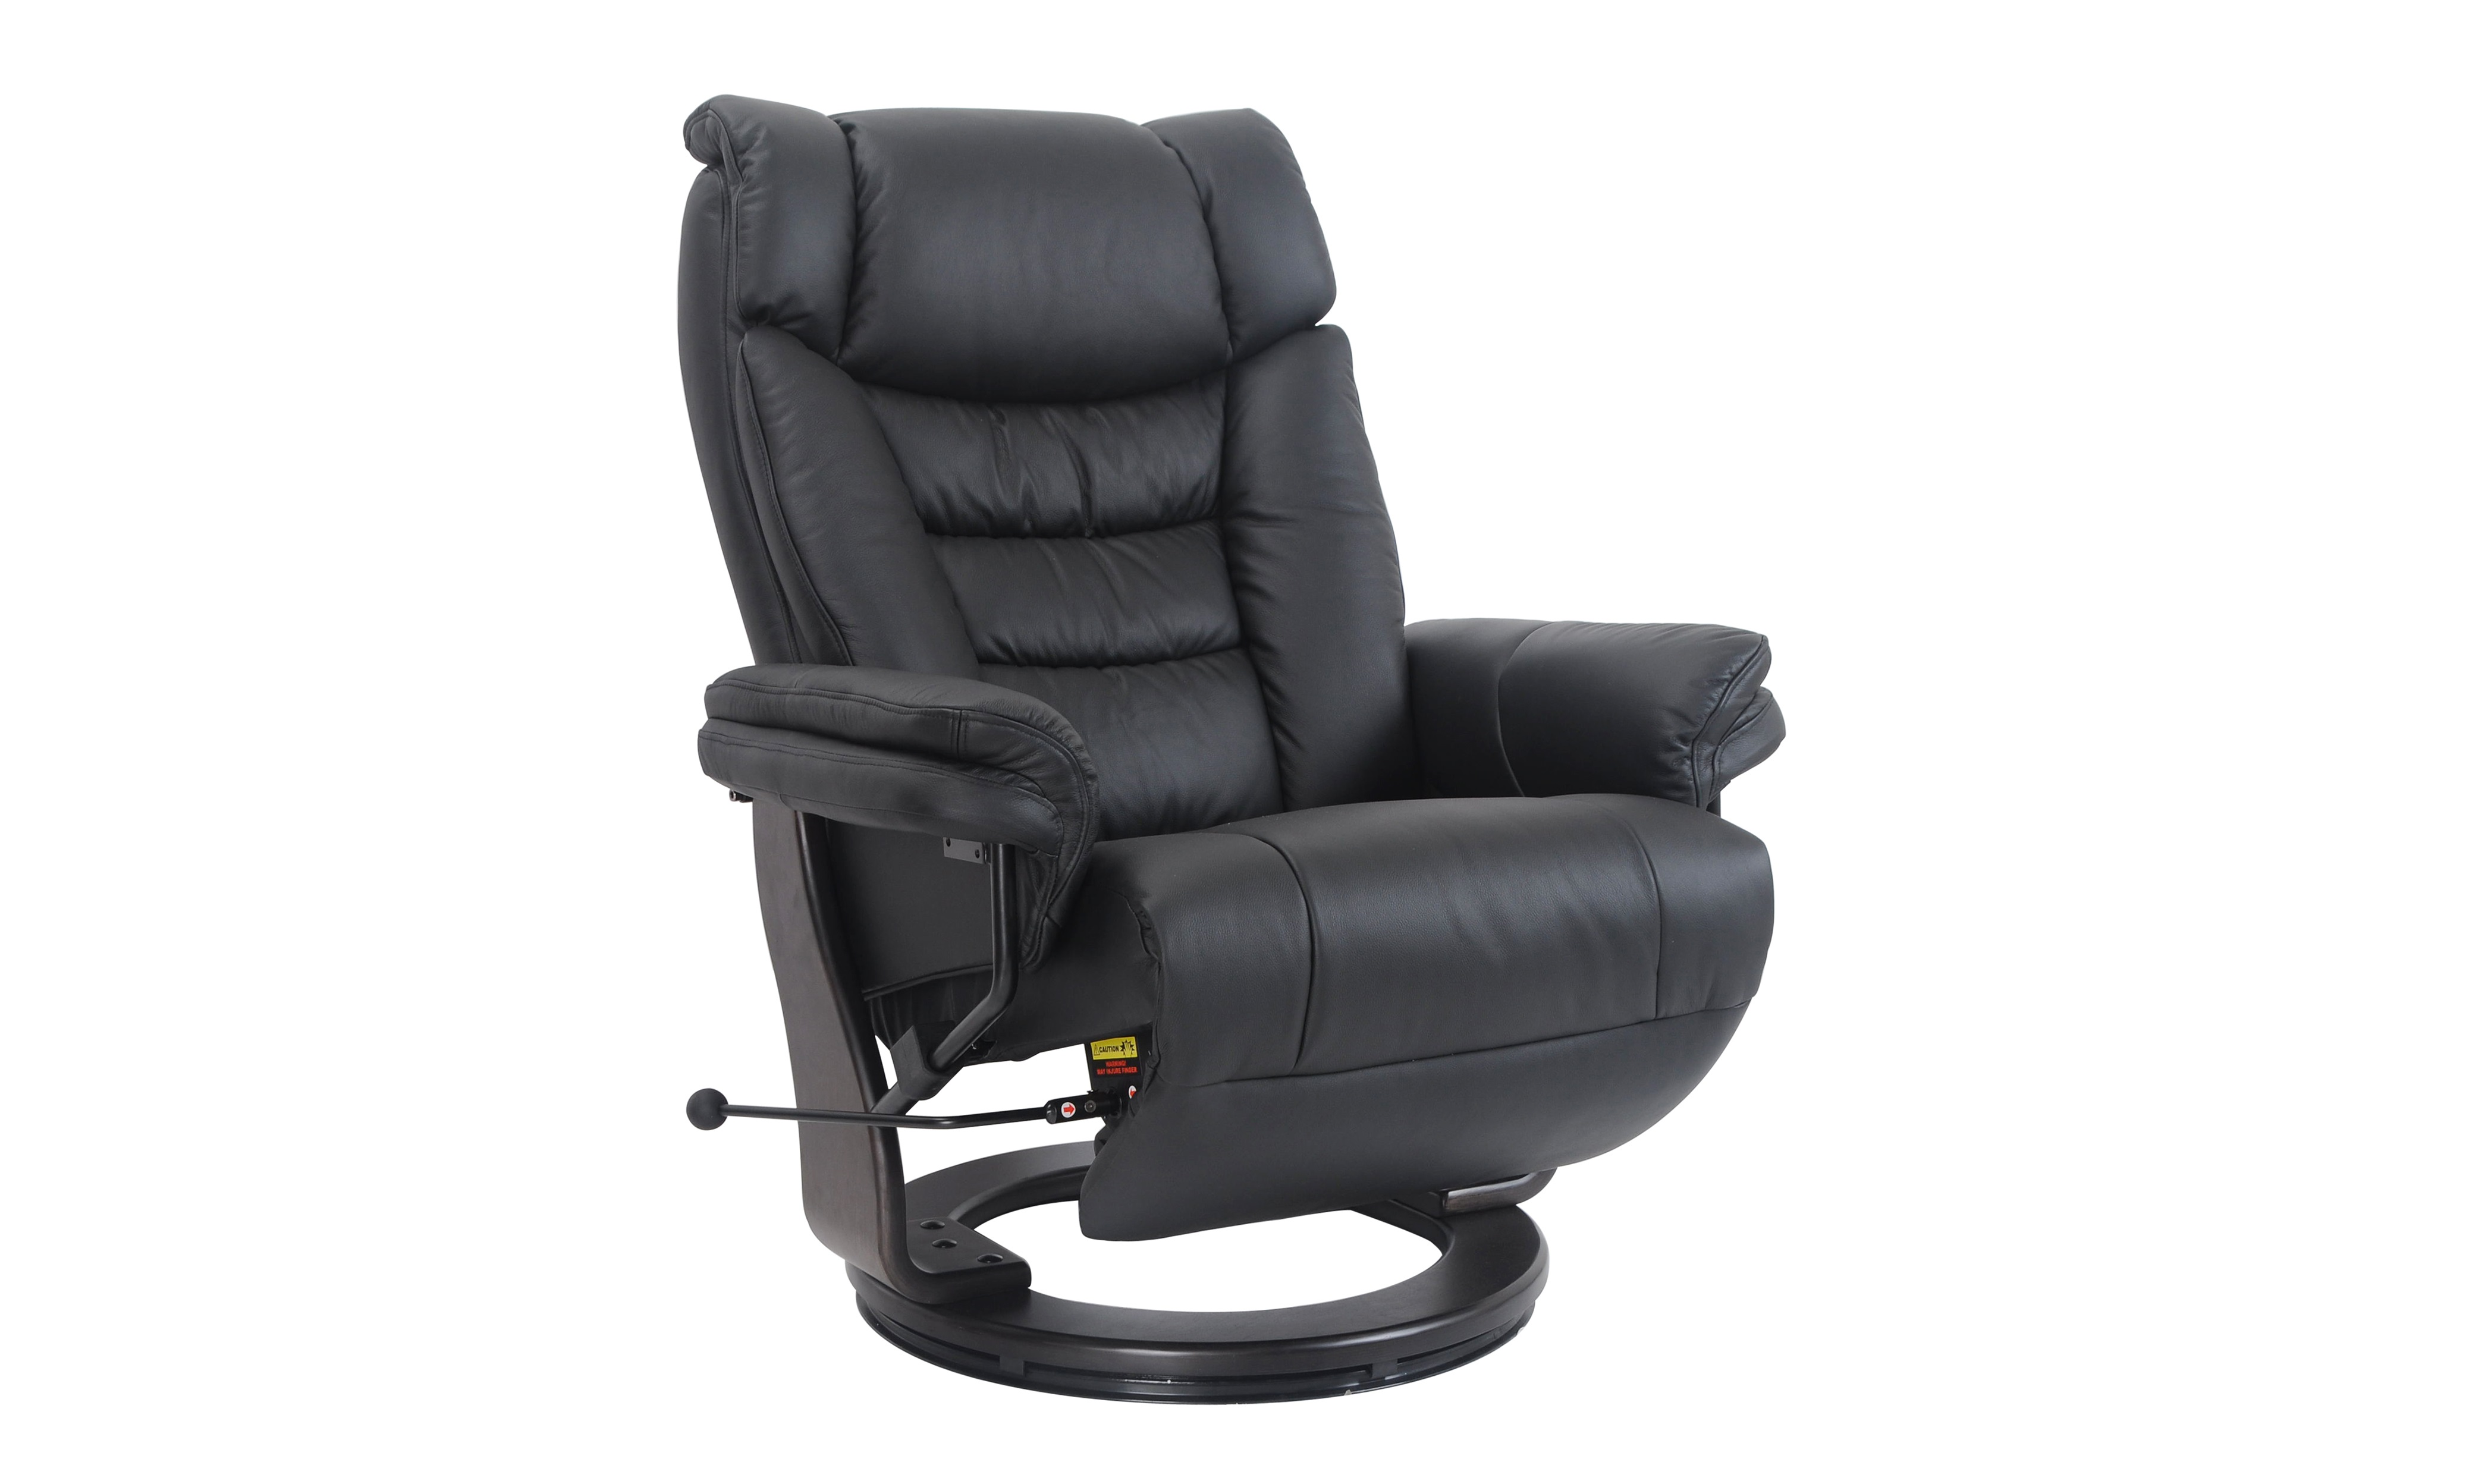 Magnificent Furniture Solutions Sven Recliner With Integrated Footrest Ibusinesslaw Wood Chair Design Ideas Ibusinesslaworg